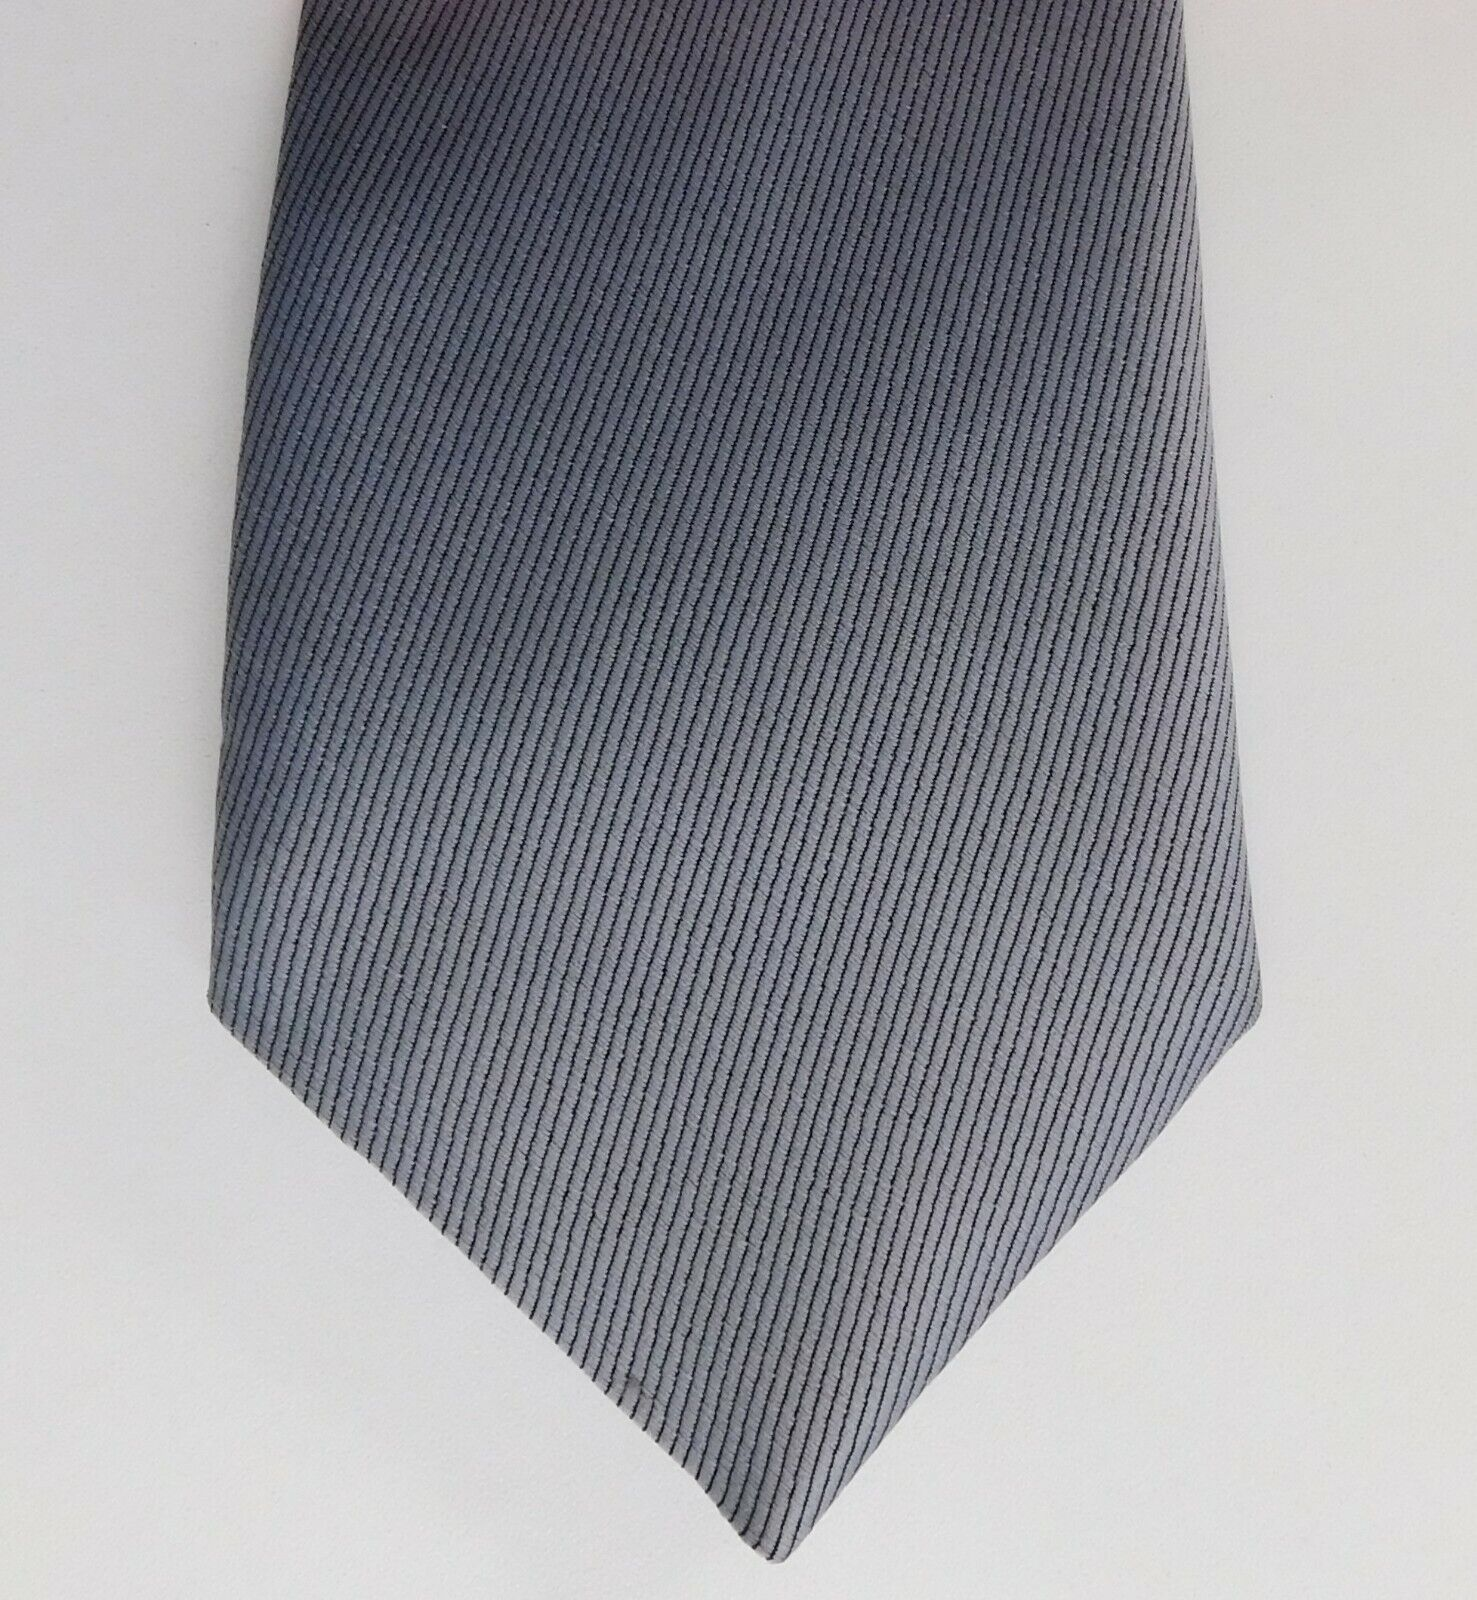 Grey striped wide tie with black pinstripe Cheep and cheerful